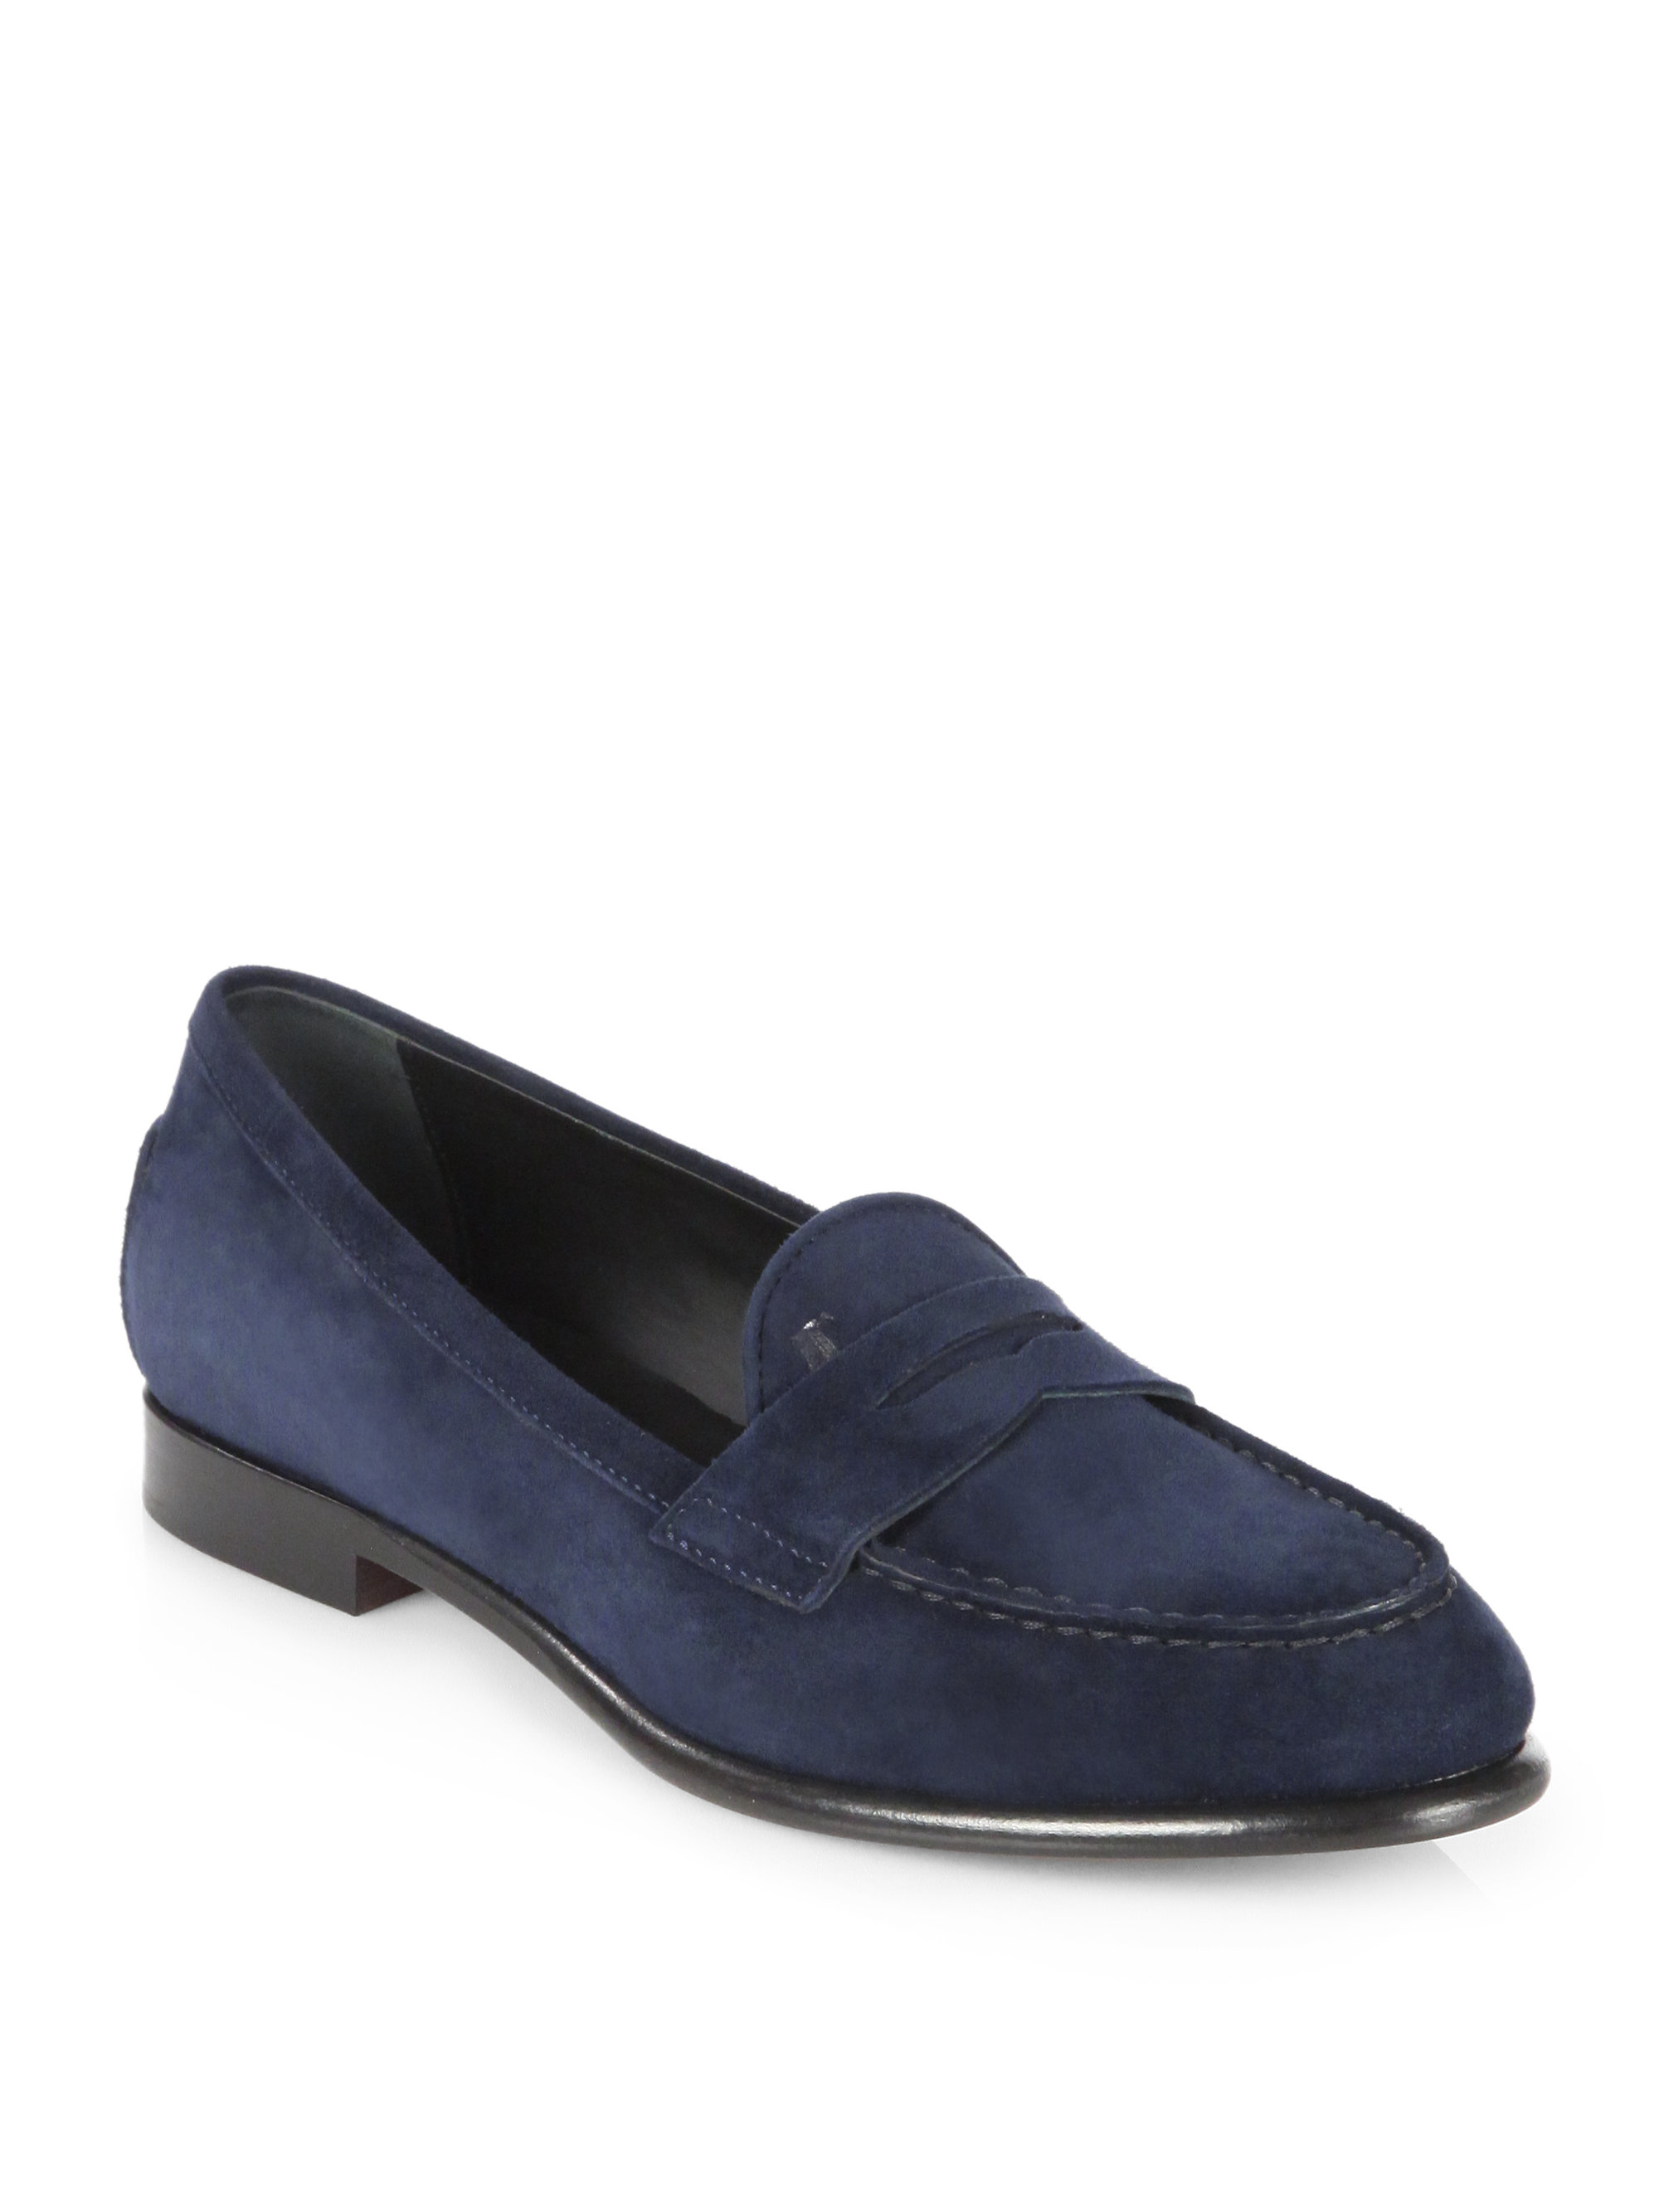 Blue Suede Ferragamo Shoes